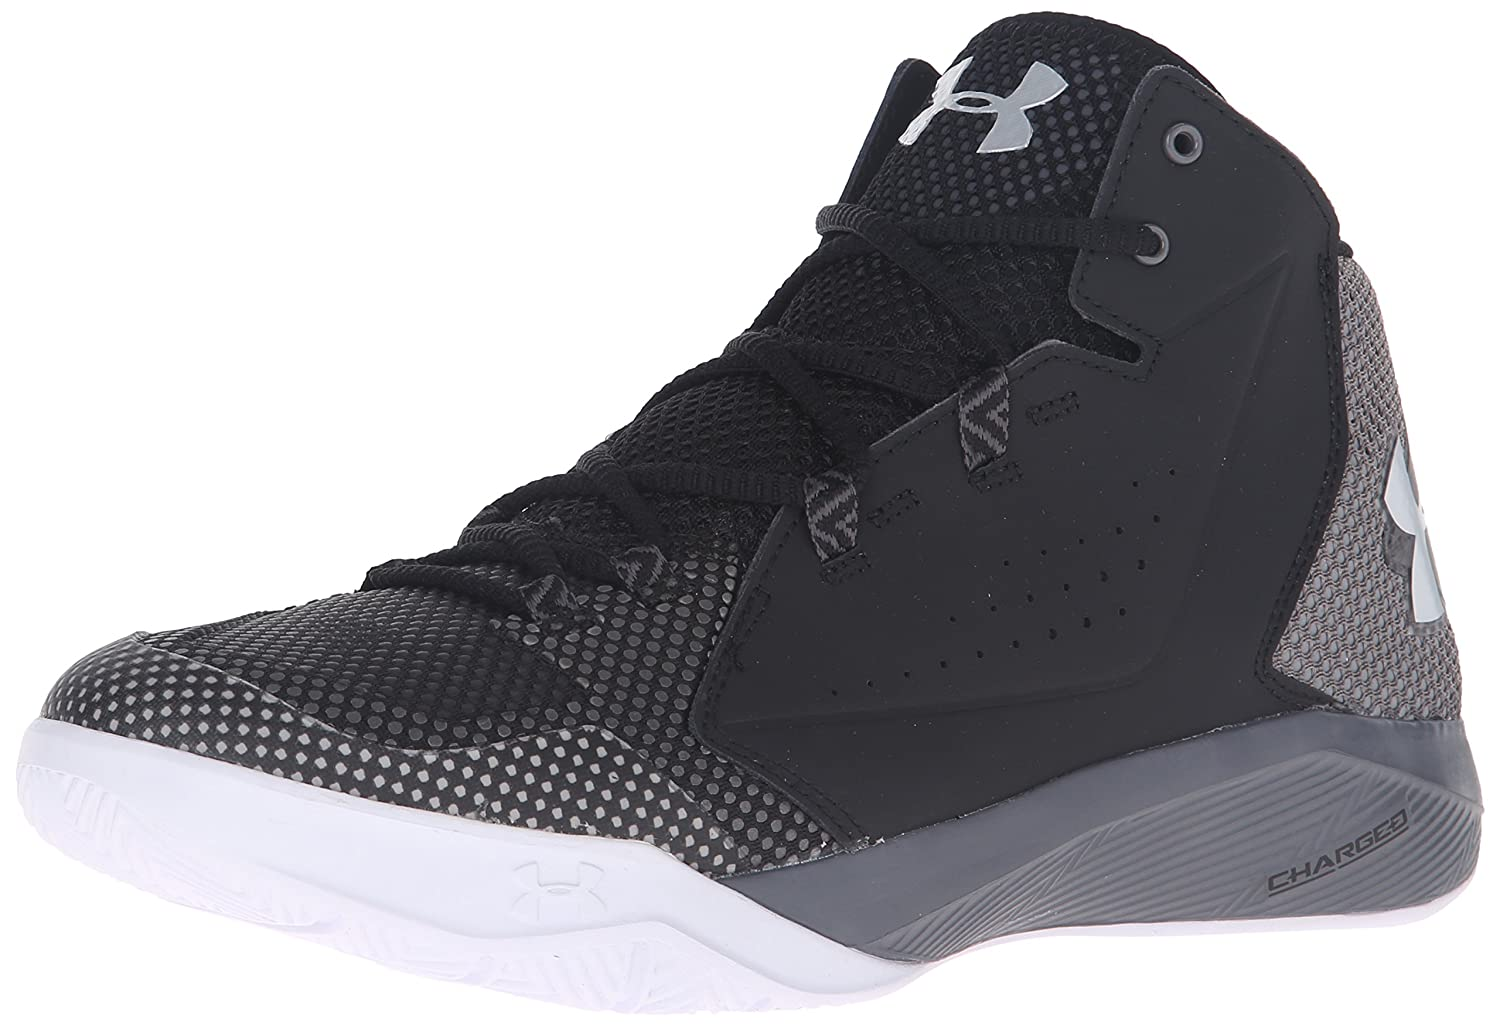 Under Armour Sko Belastet Pris exl5aOUMjQ